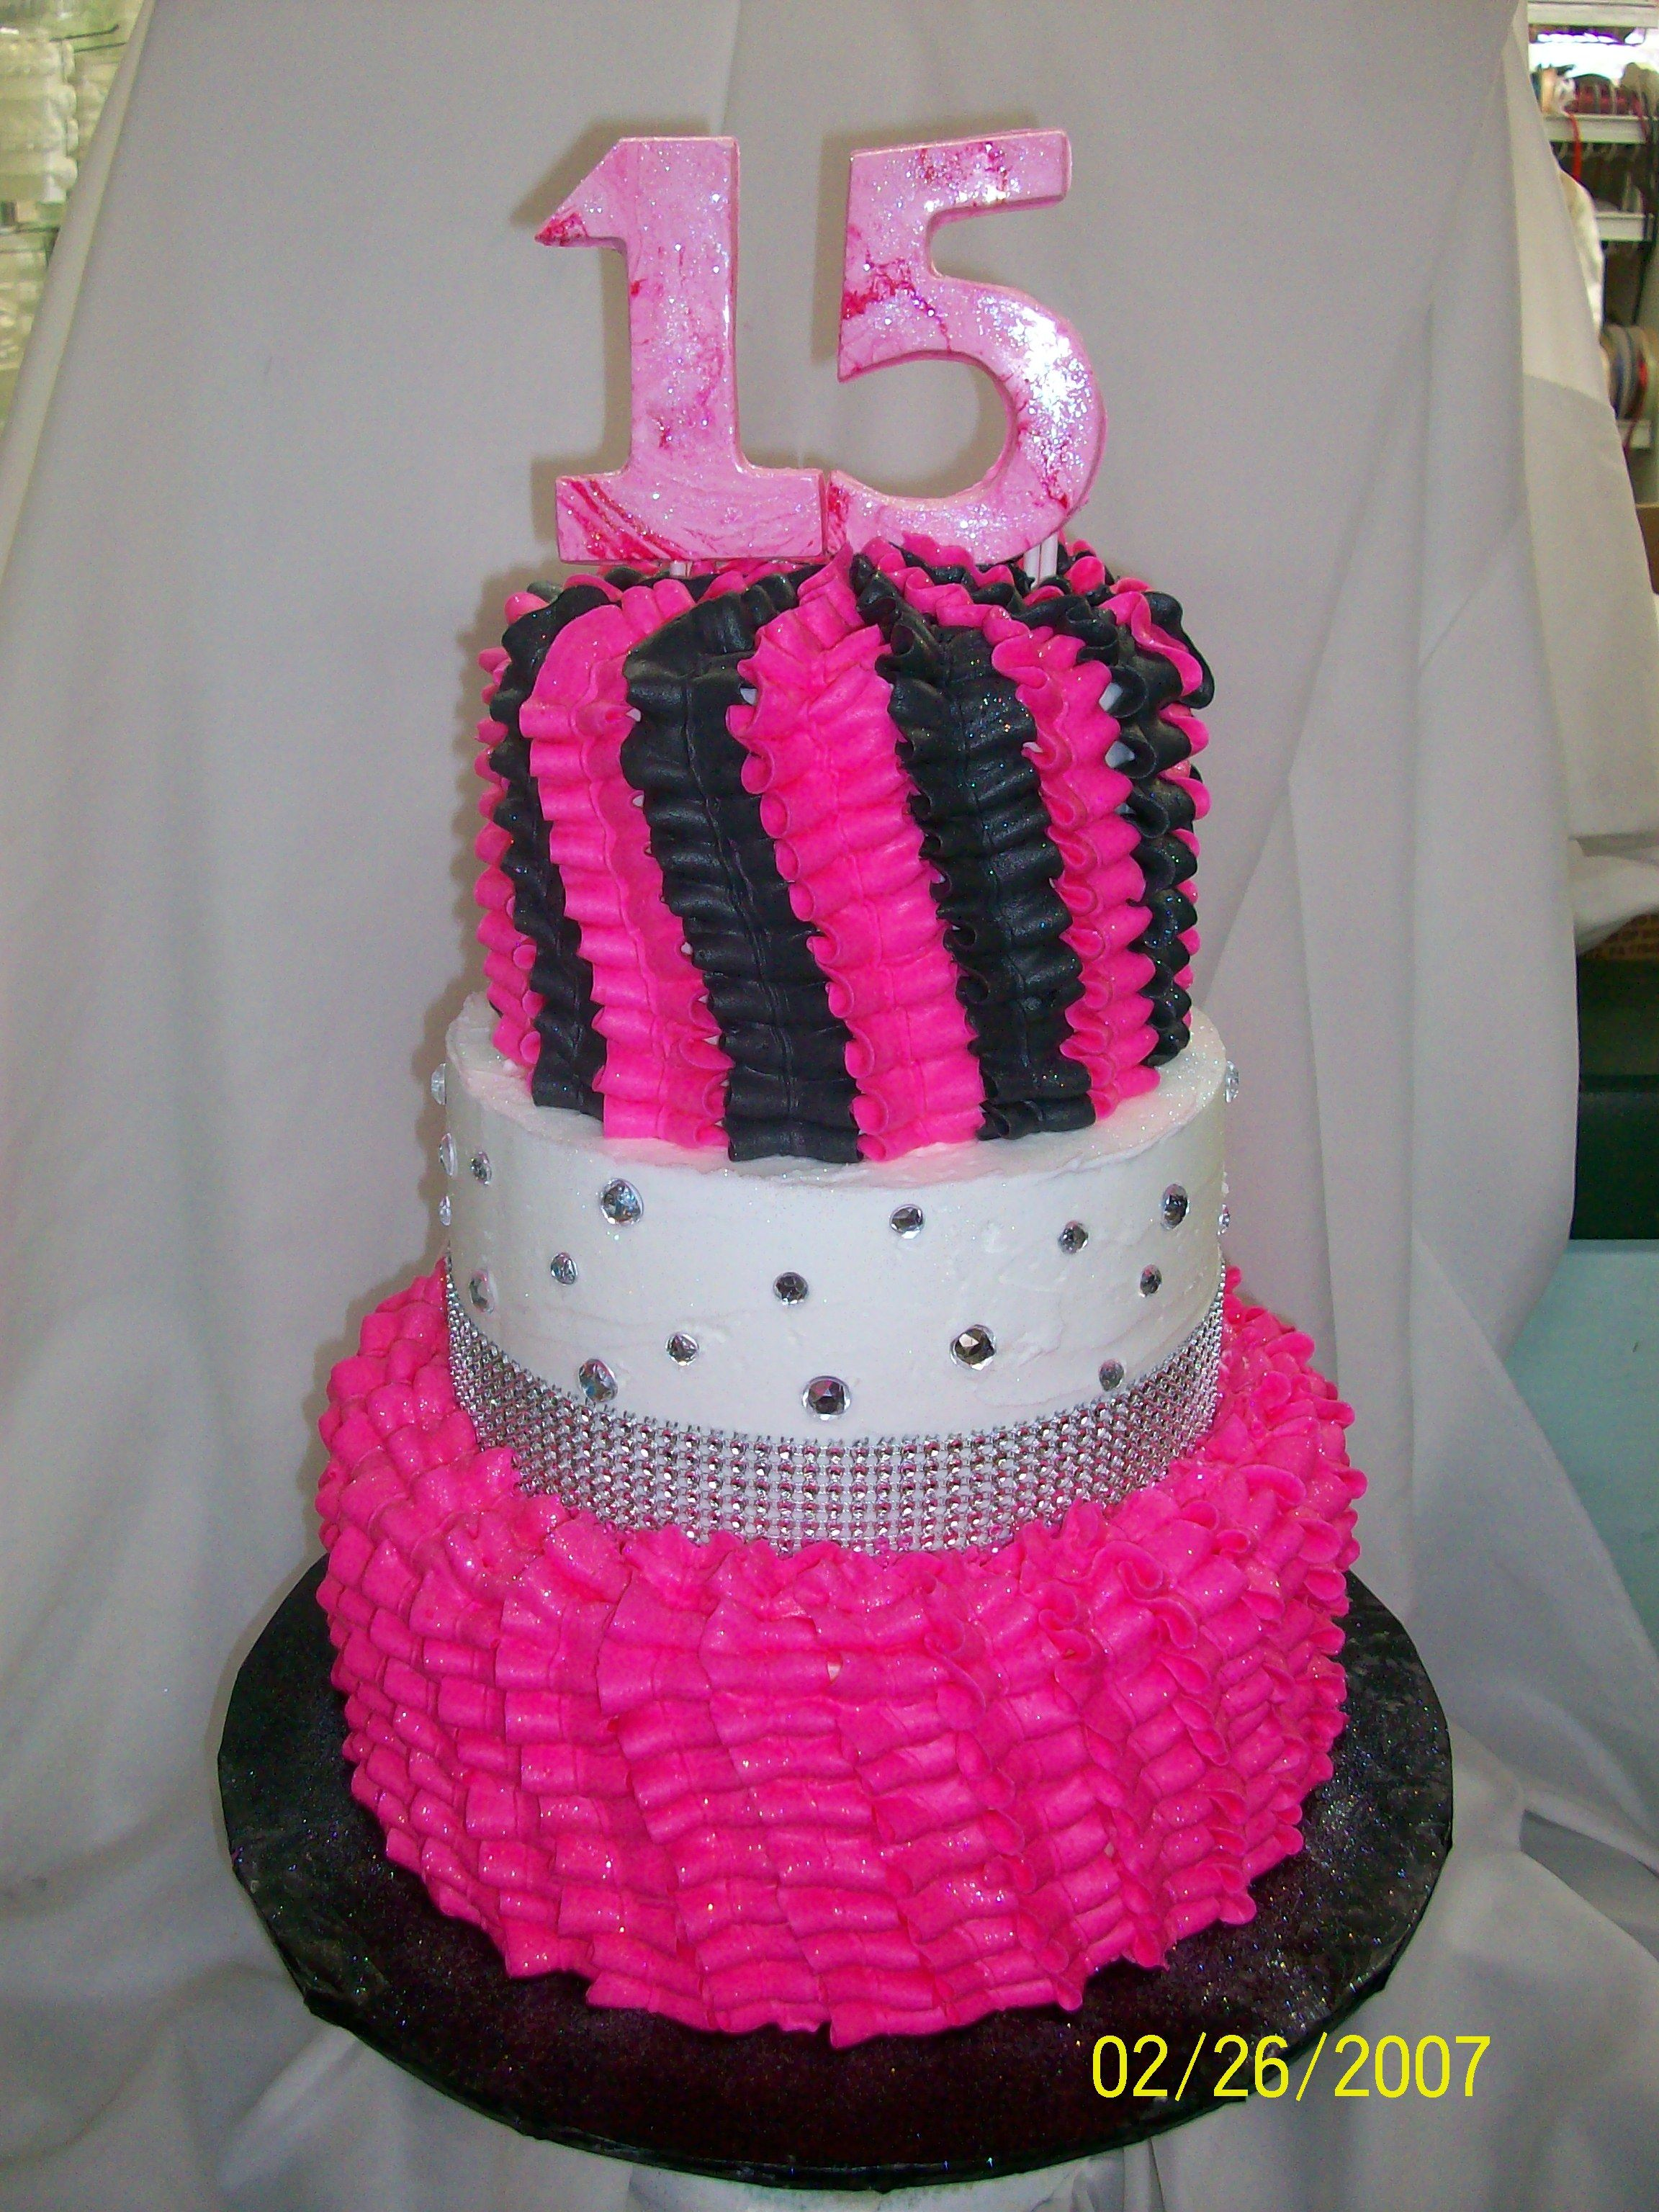 15th birthday cake 15th birthday cake pink and black ruffles in a twist 1025